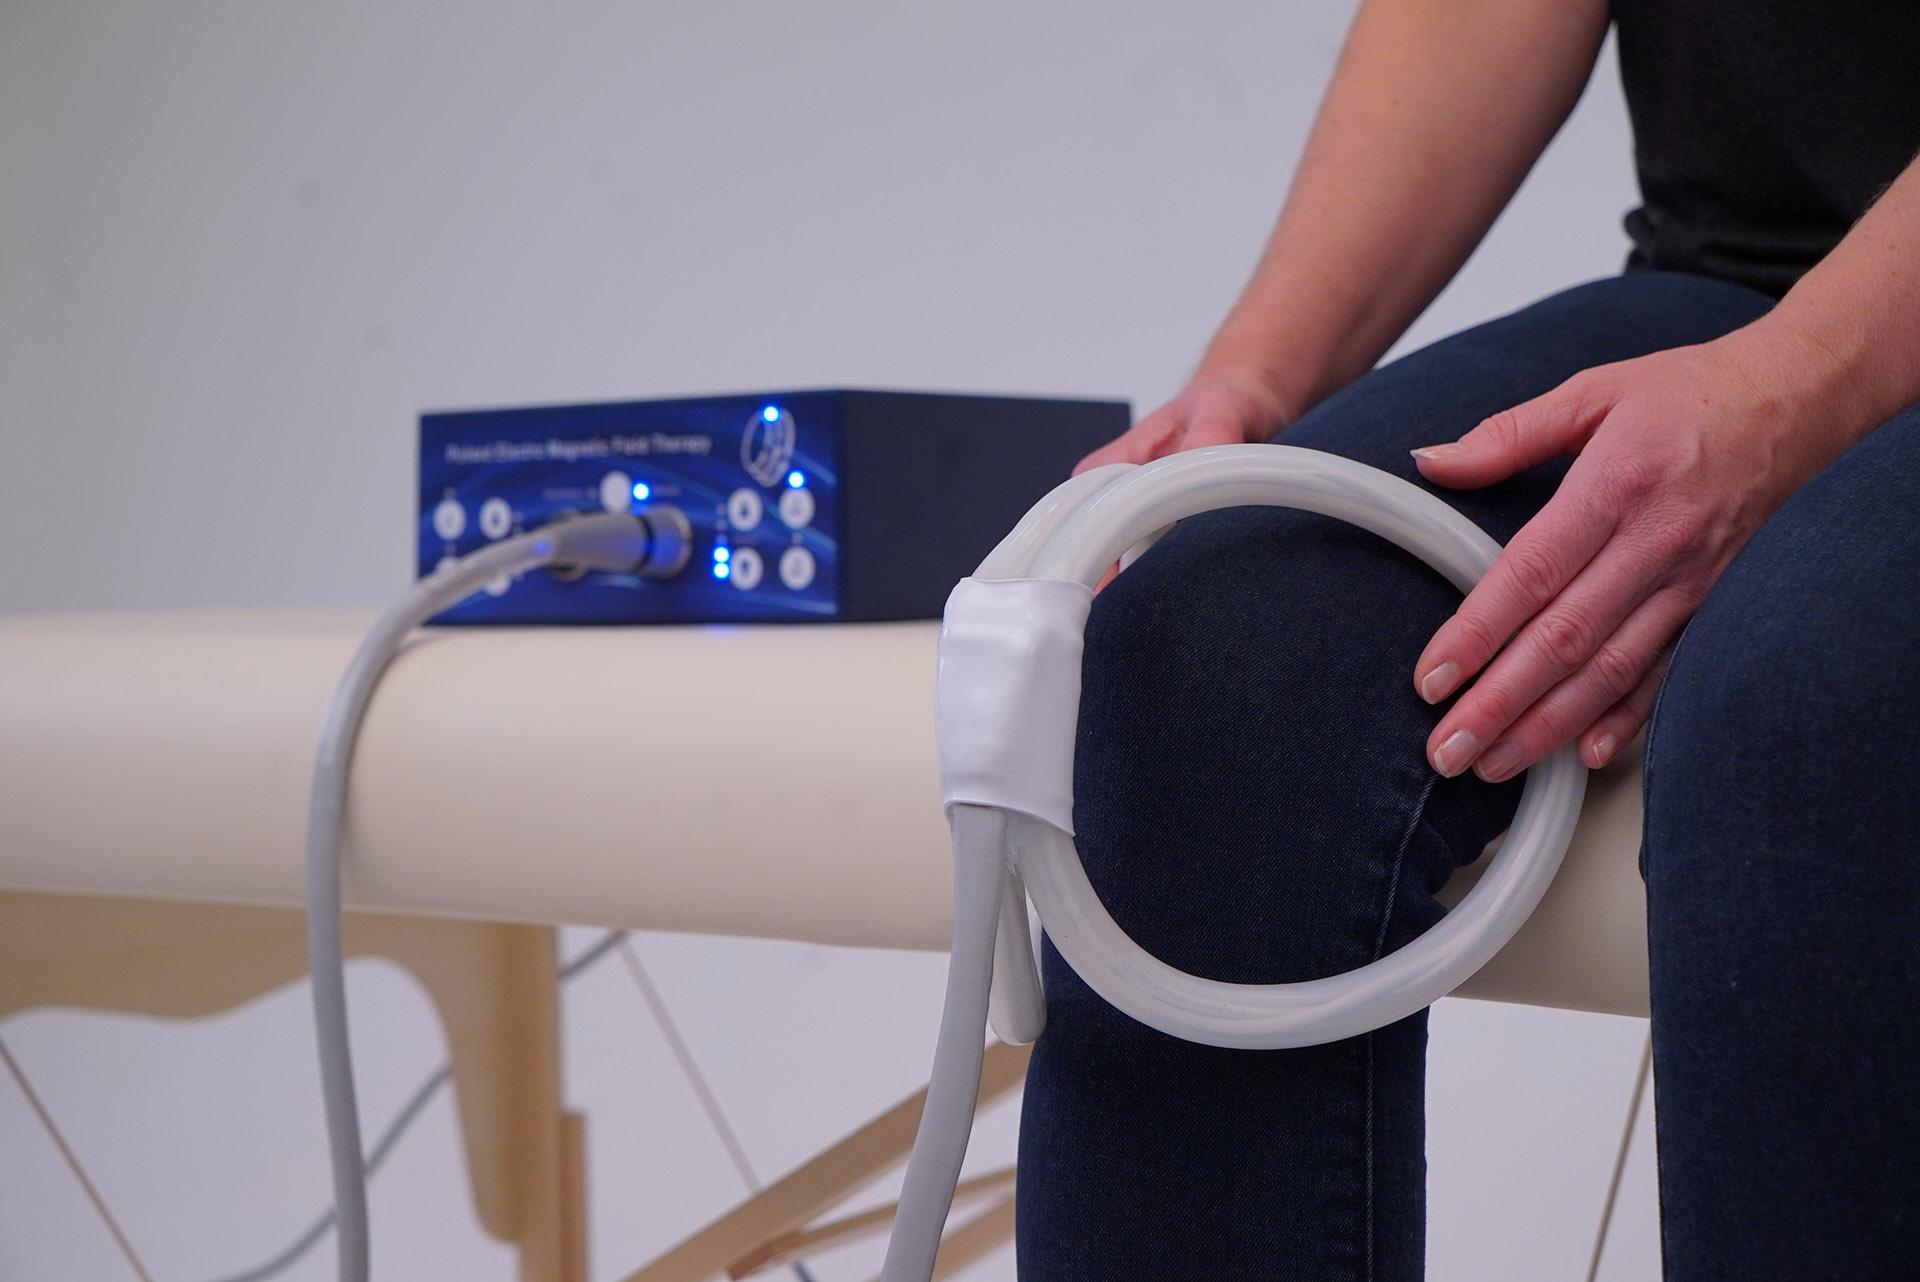 PEMF therapy Knees TeslaFit Duo Butterfly Coil